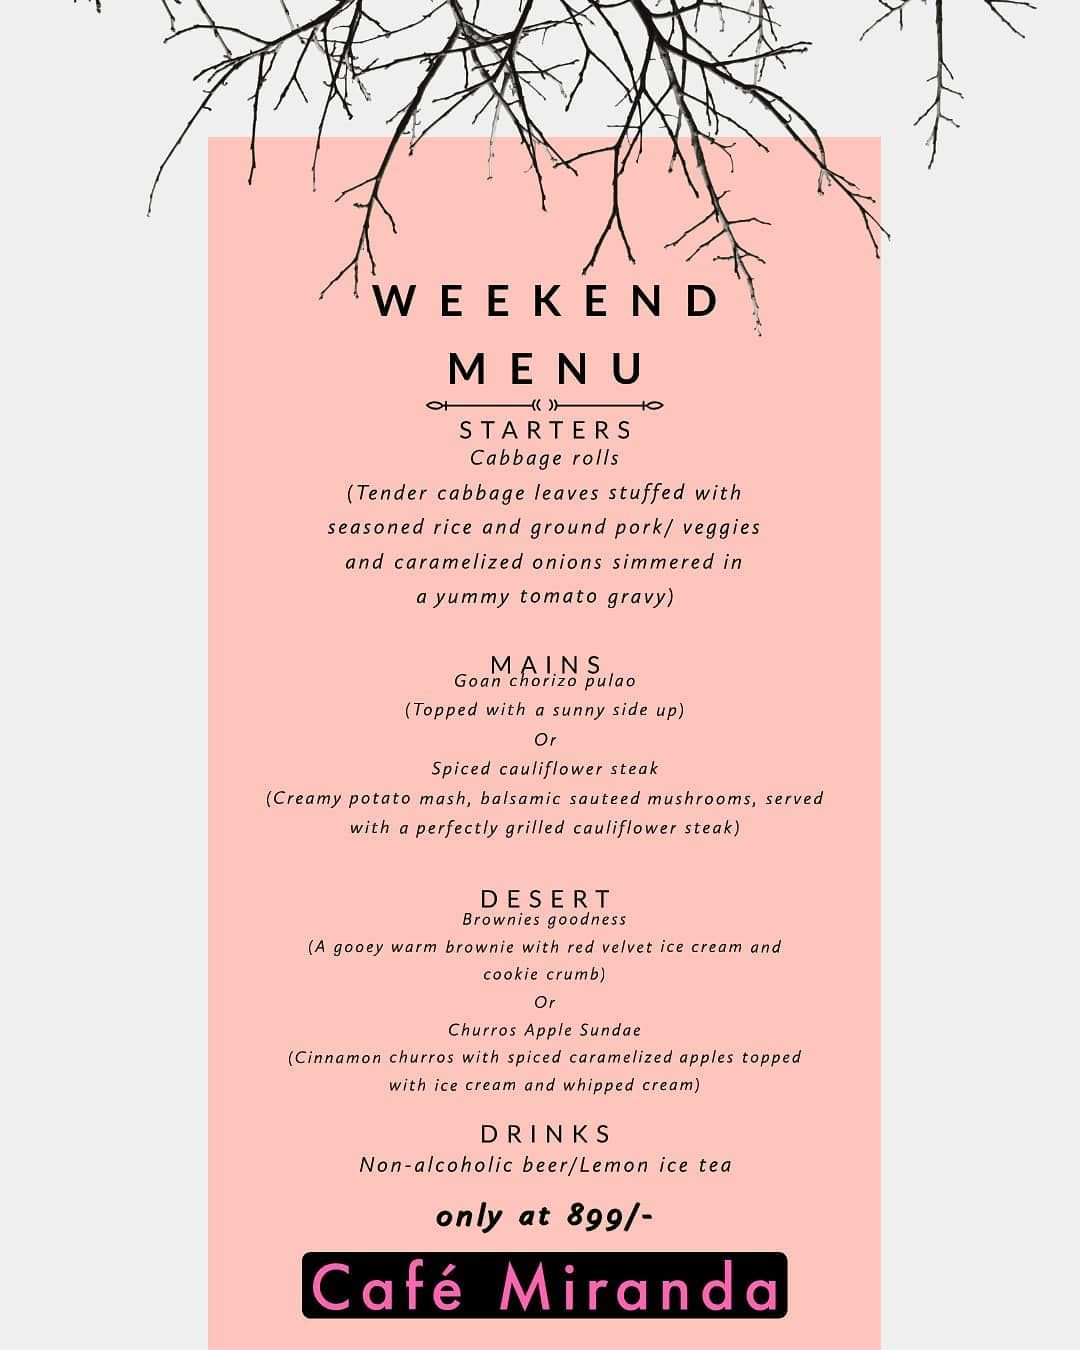 Come enjoy our set menu this weekend